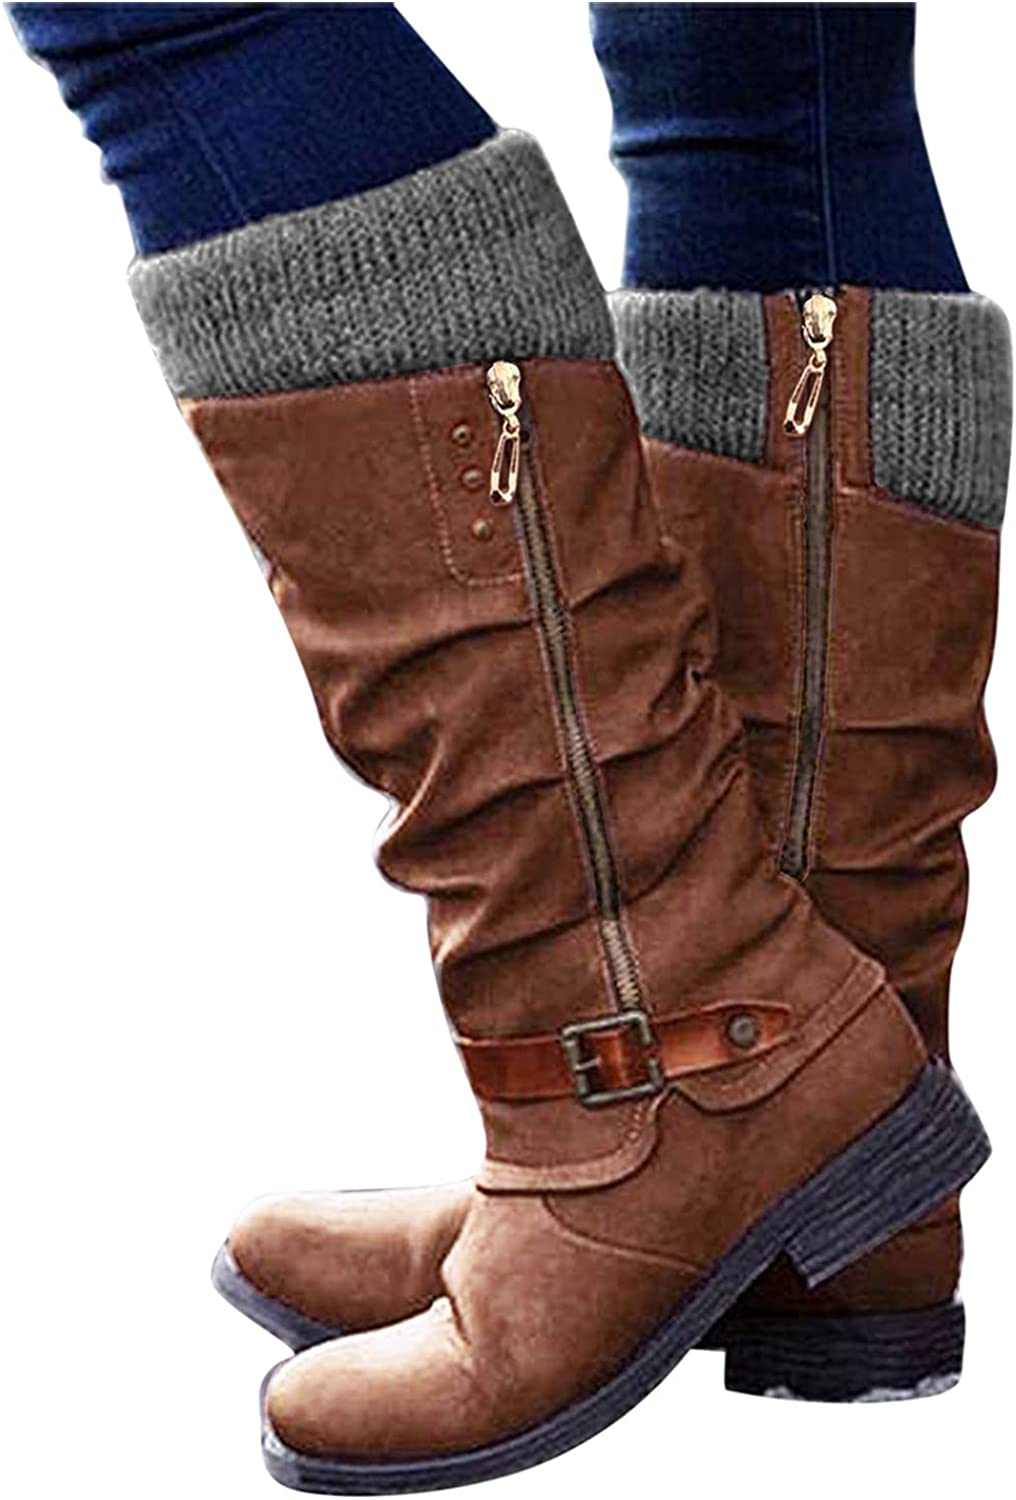 Gibobby Boots for Women,Womens Round Toe Platform Boots Side Zipper Buckle Mid-Calf Boots Casual Flat Heel Fashion Cowboy Boots